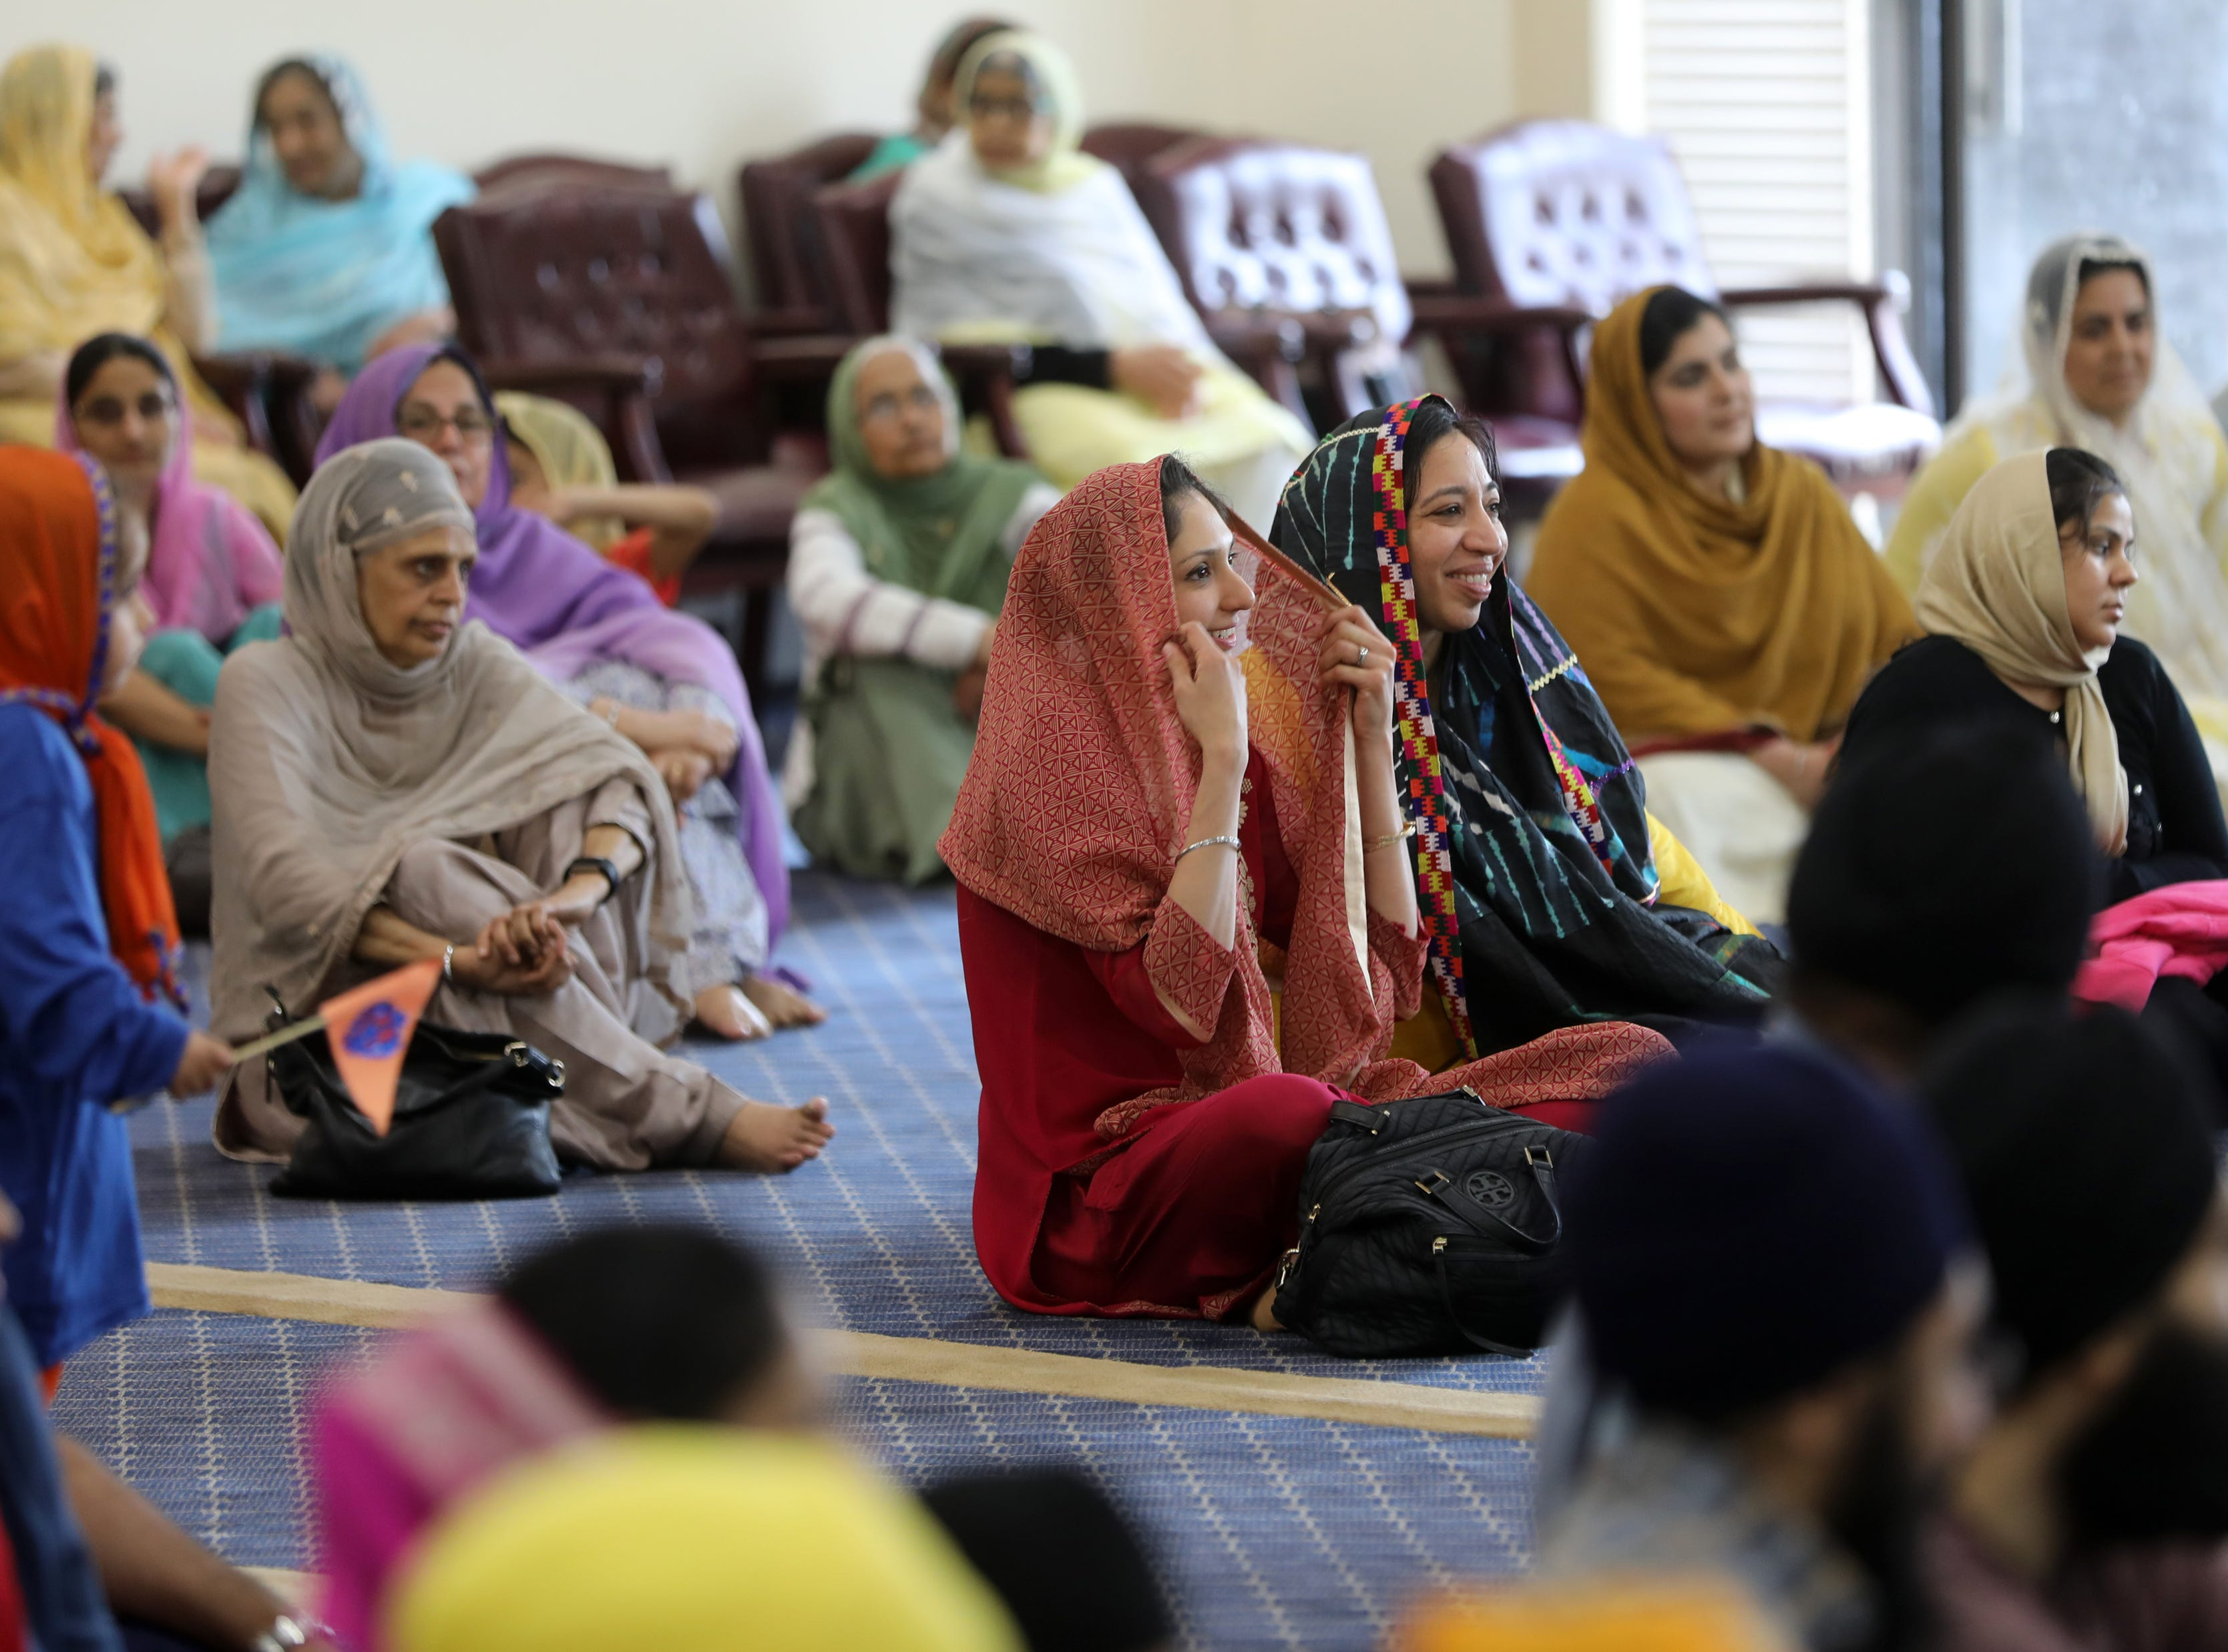 People are shown in the mail hall during the Vaisakhi Festival. Sunday, April, 14, 2019